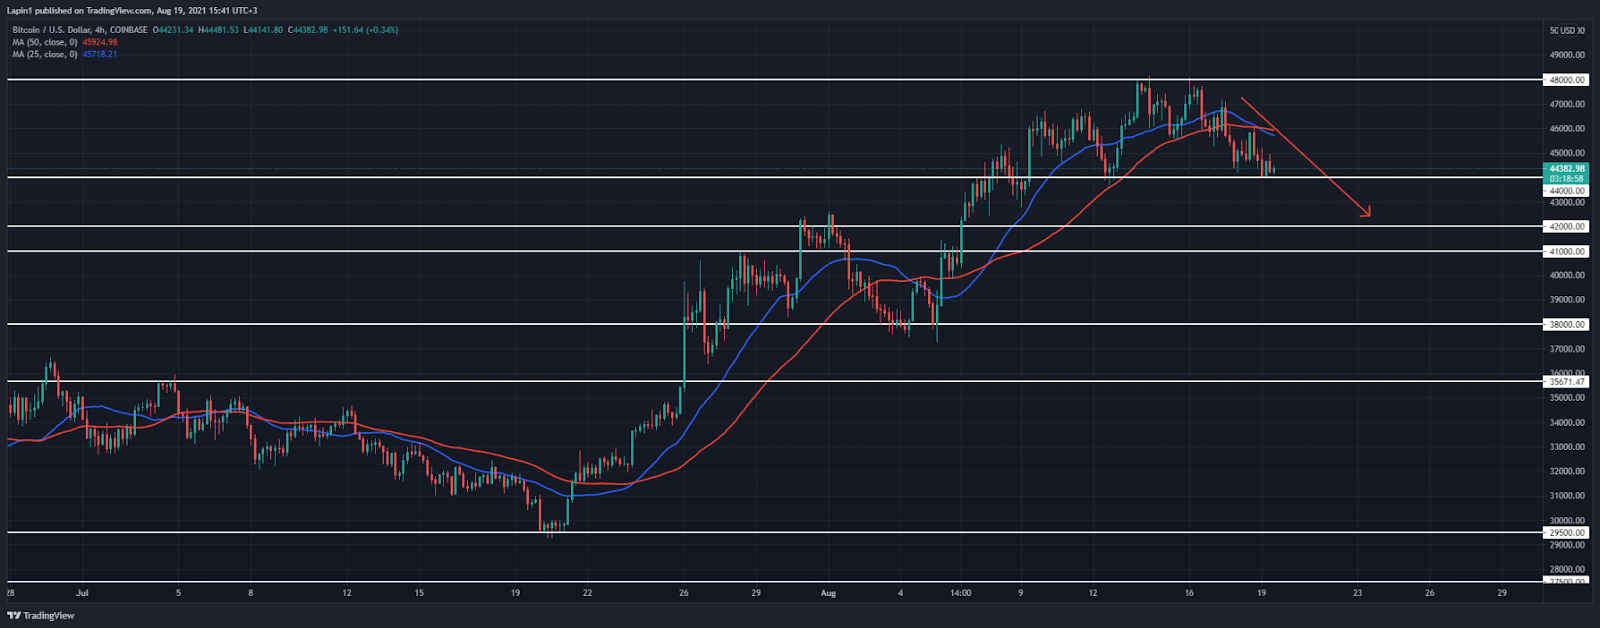 Bitcoin Price Analysis: BTC continues to decline, ready to break below the $44,000 support?